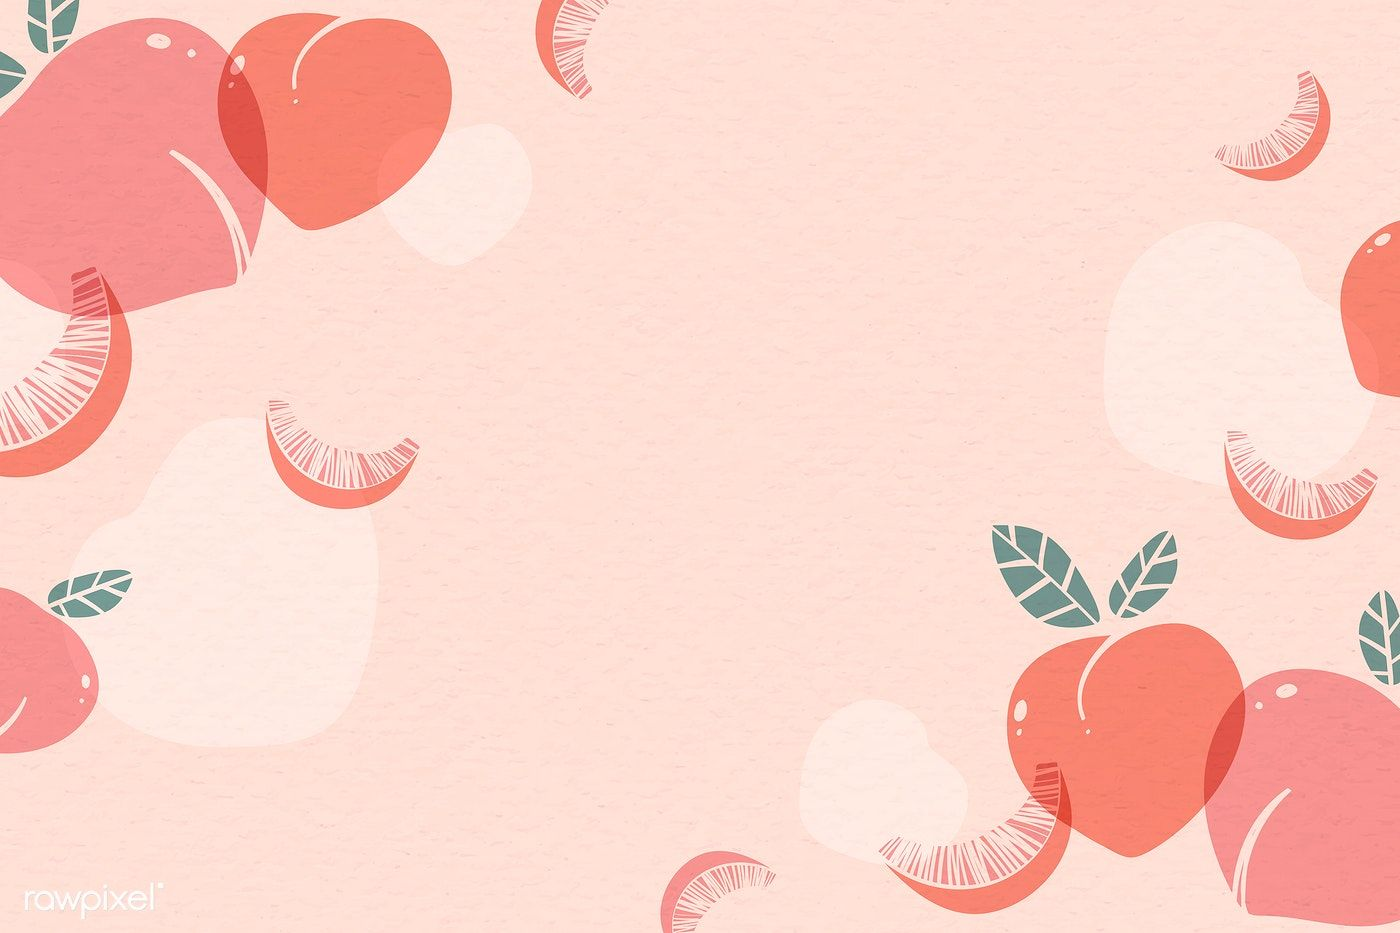 Download premium vector of Peach patterned background with design space